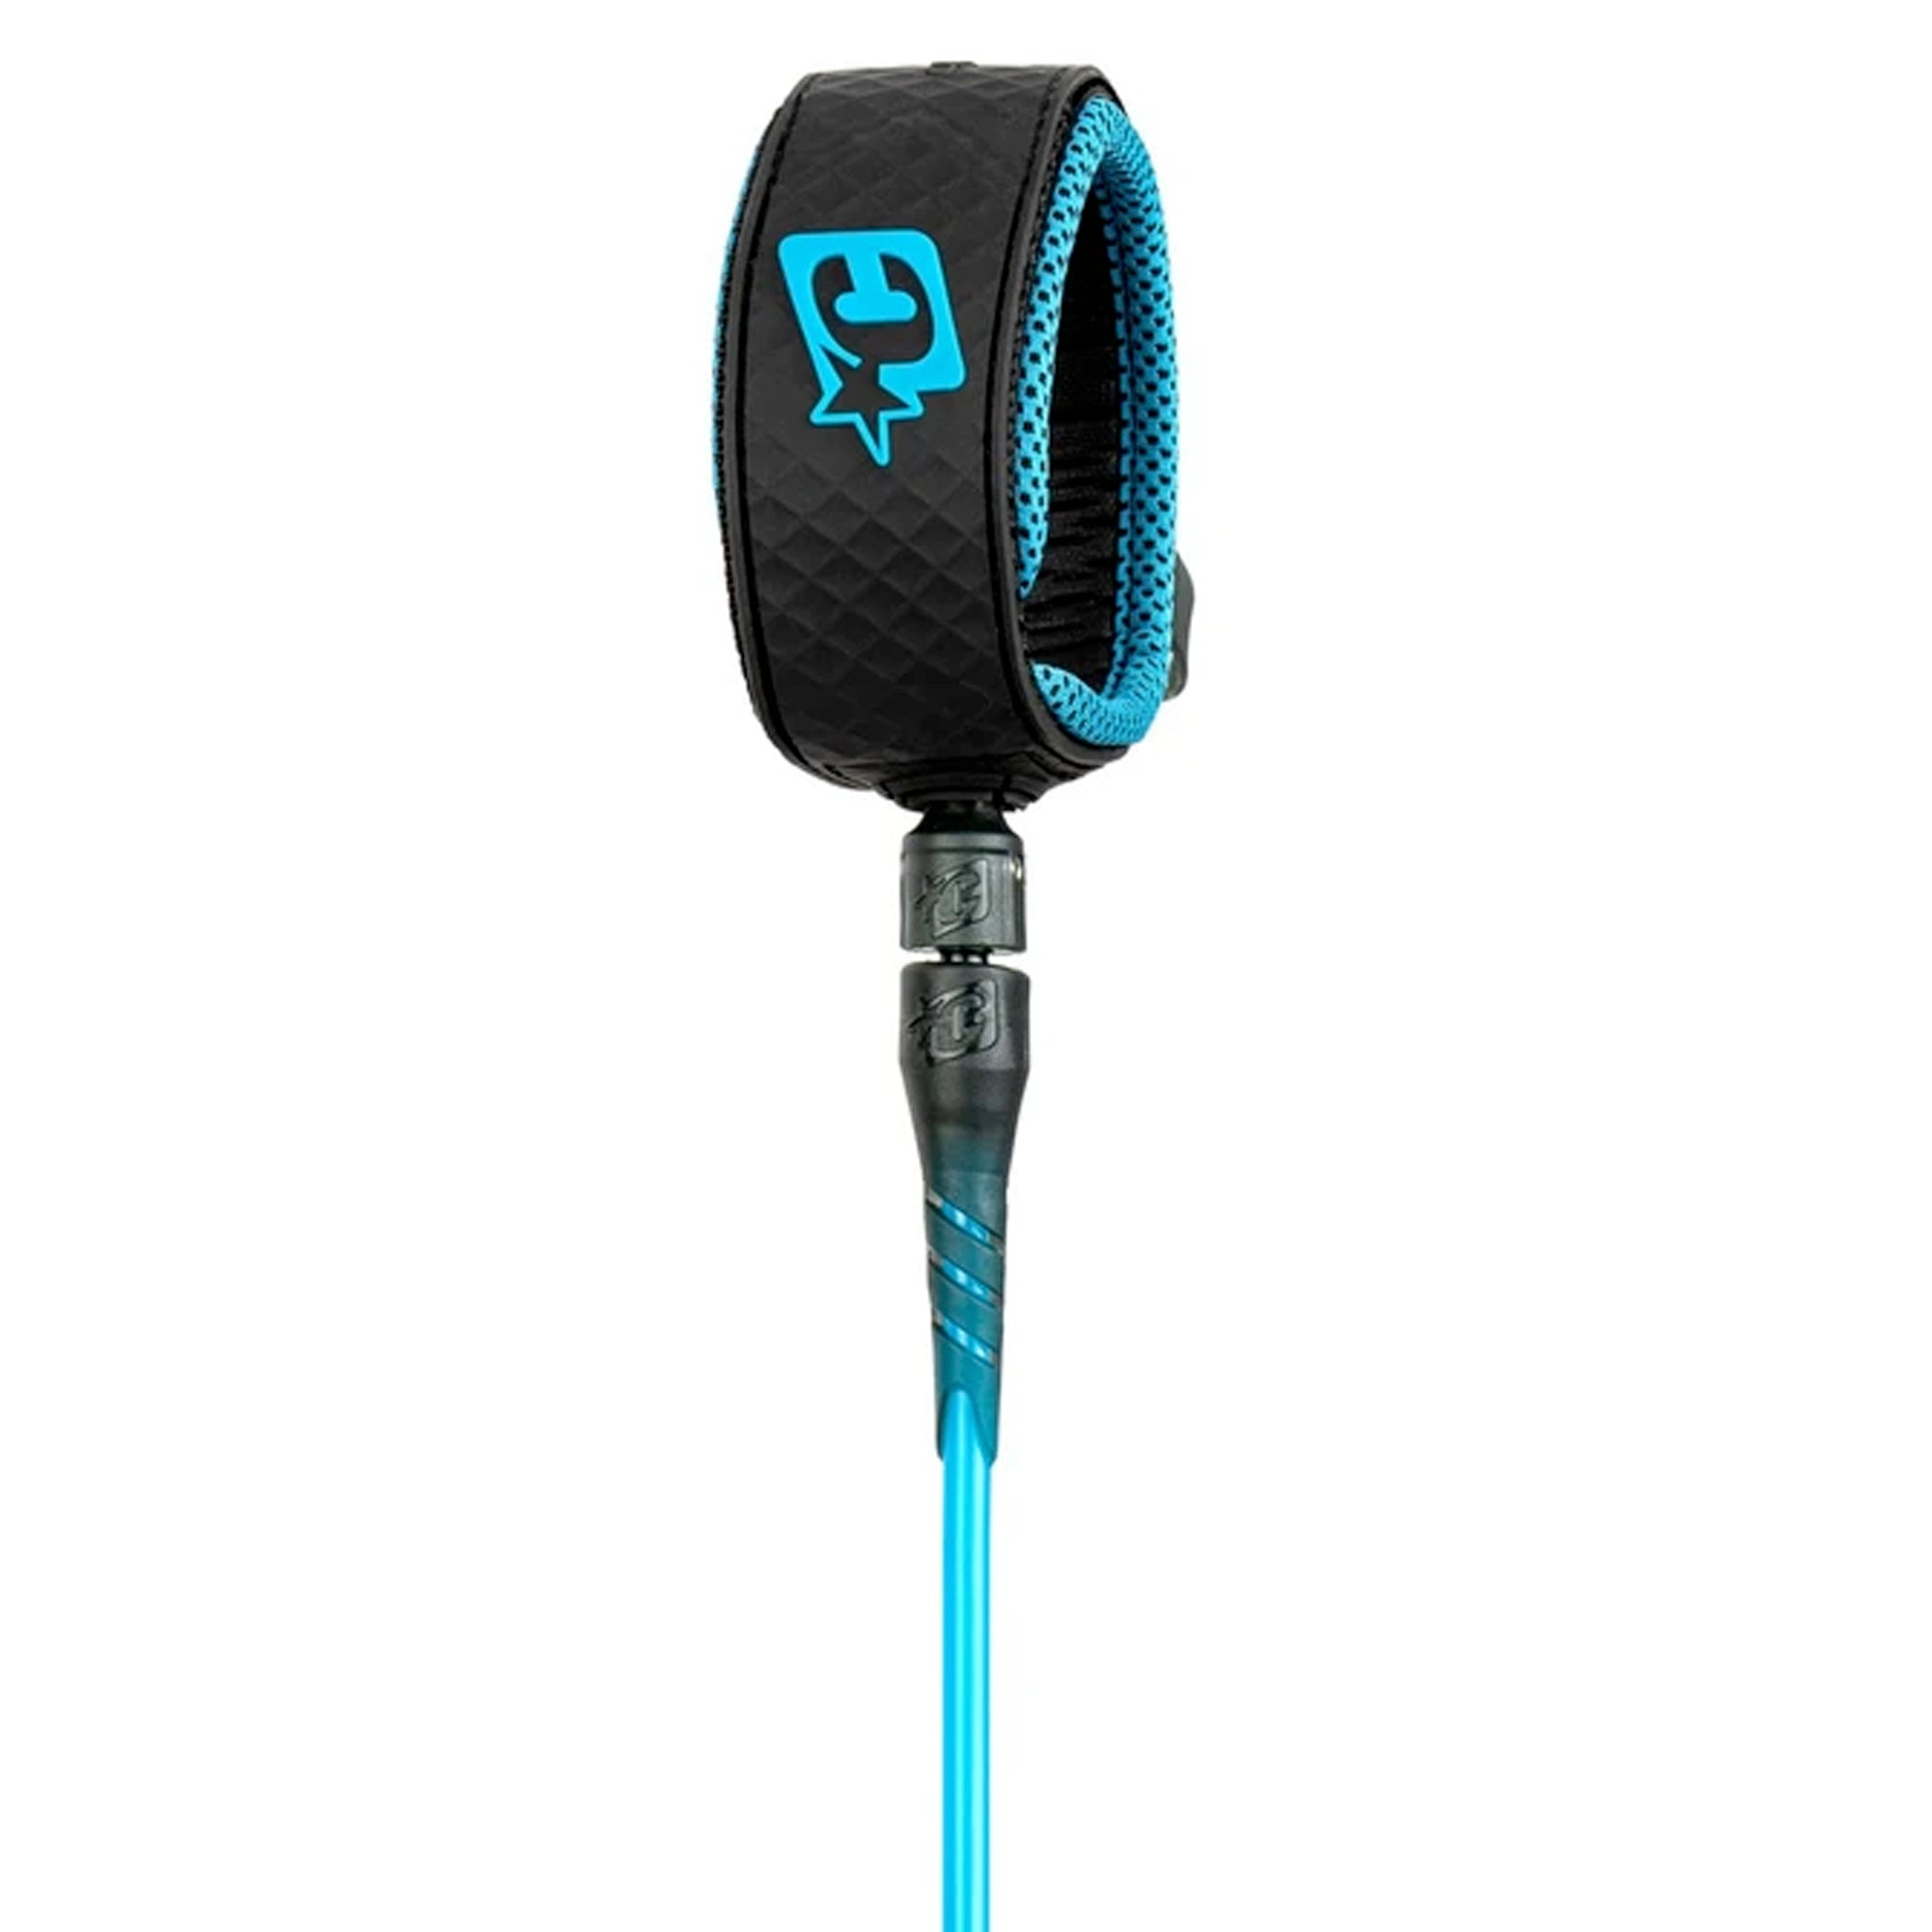 Creatures of Leisure Reliance Pro 6' Surfboard Leash - Cyan/Black